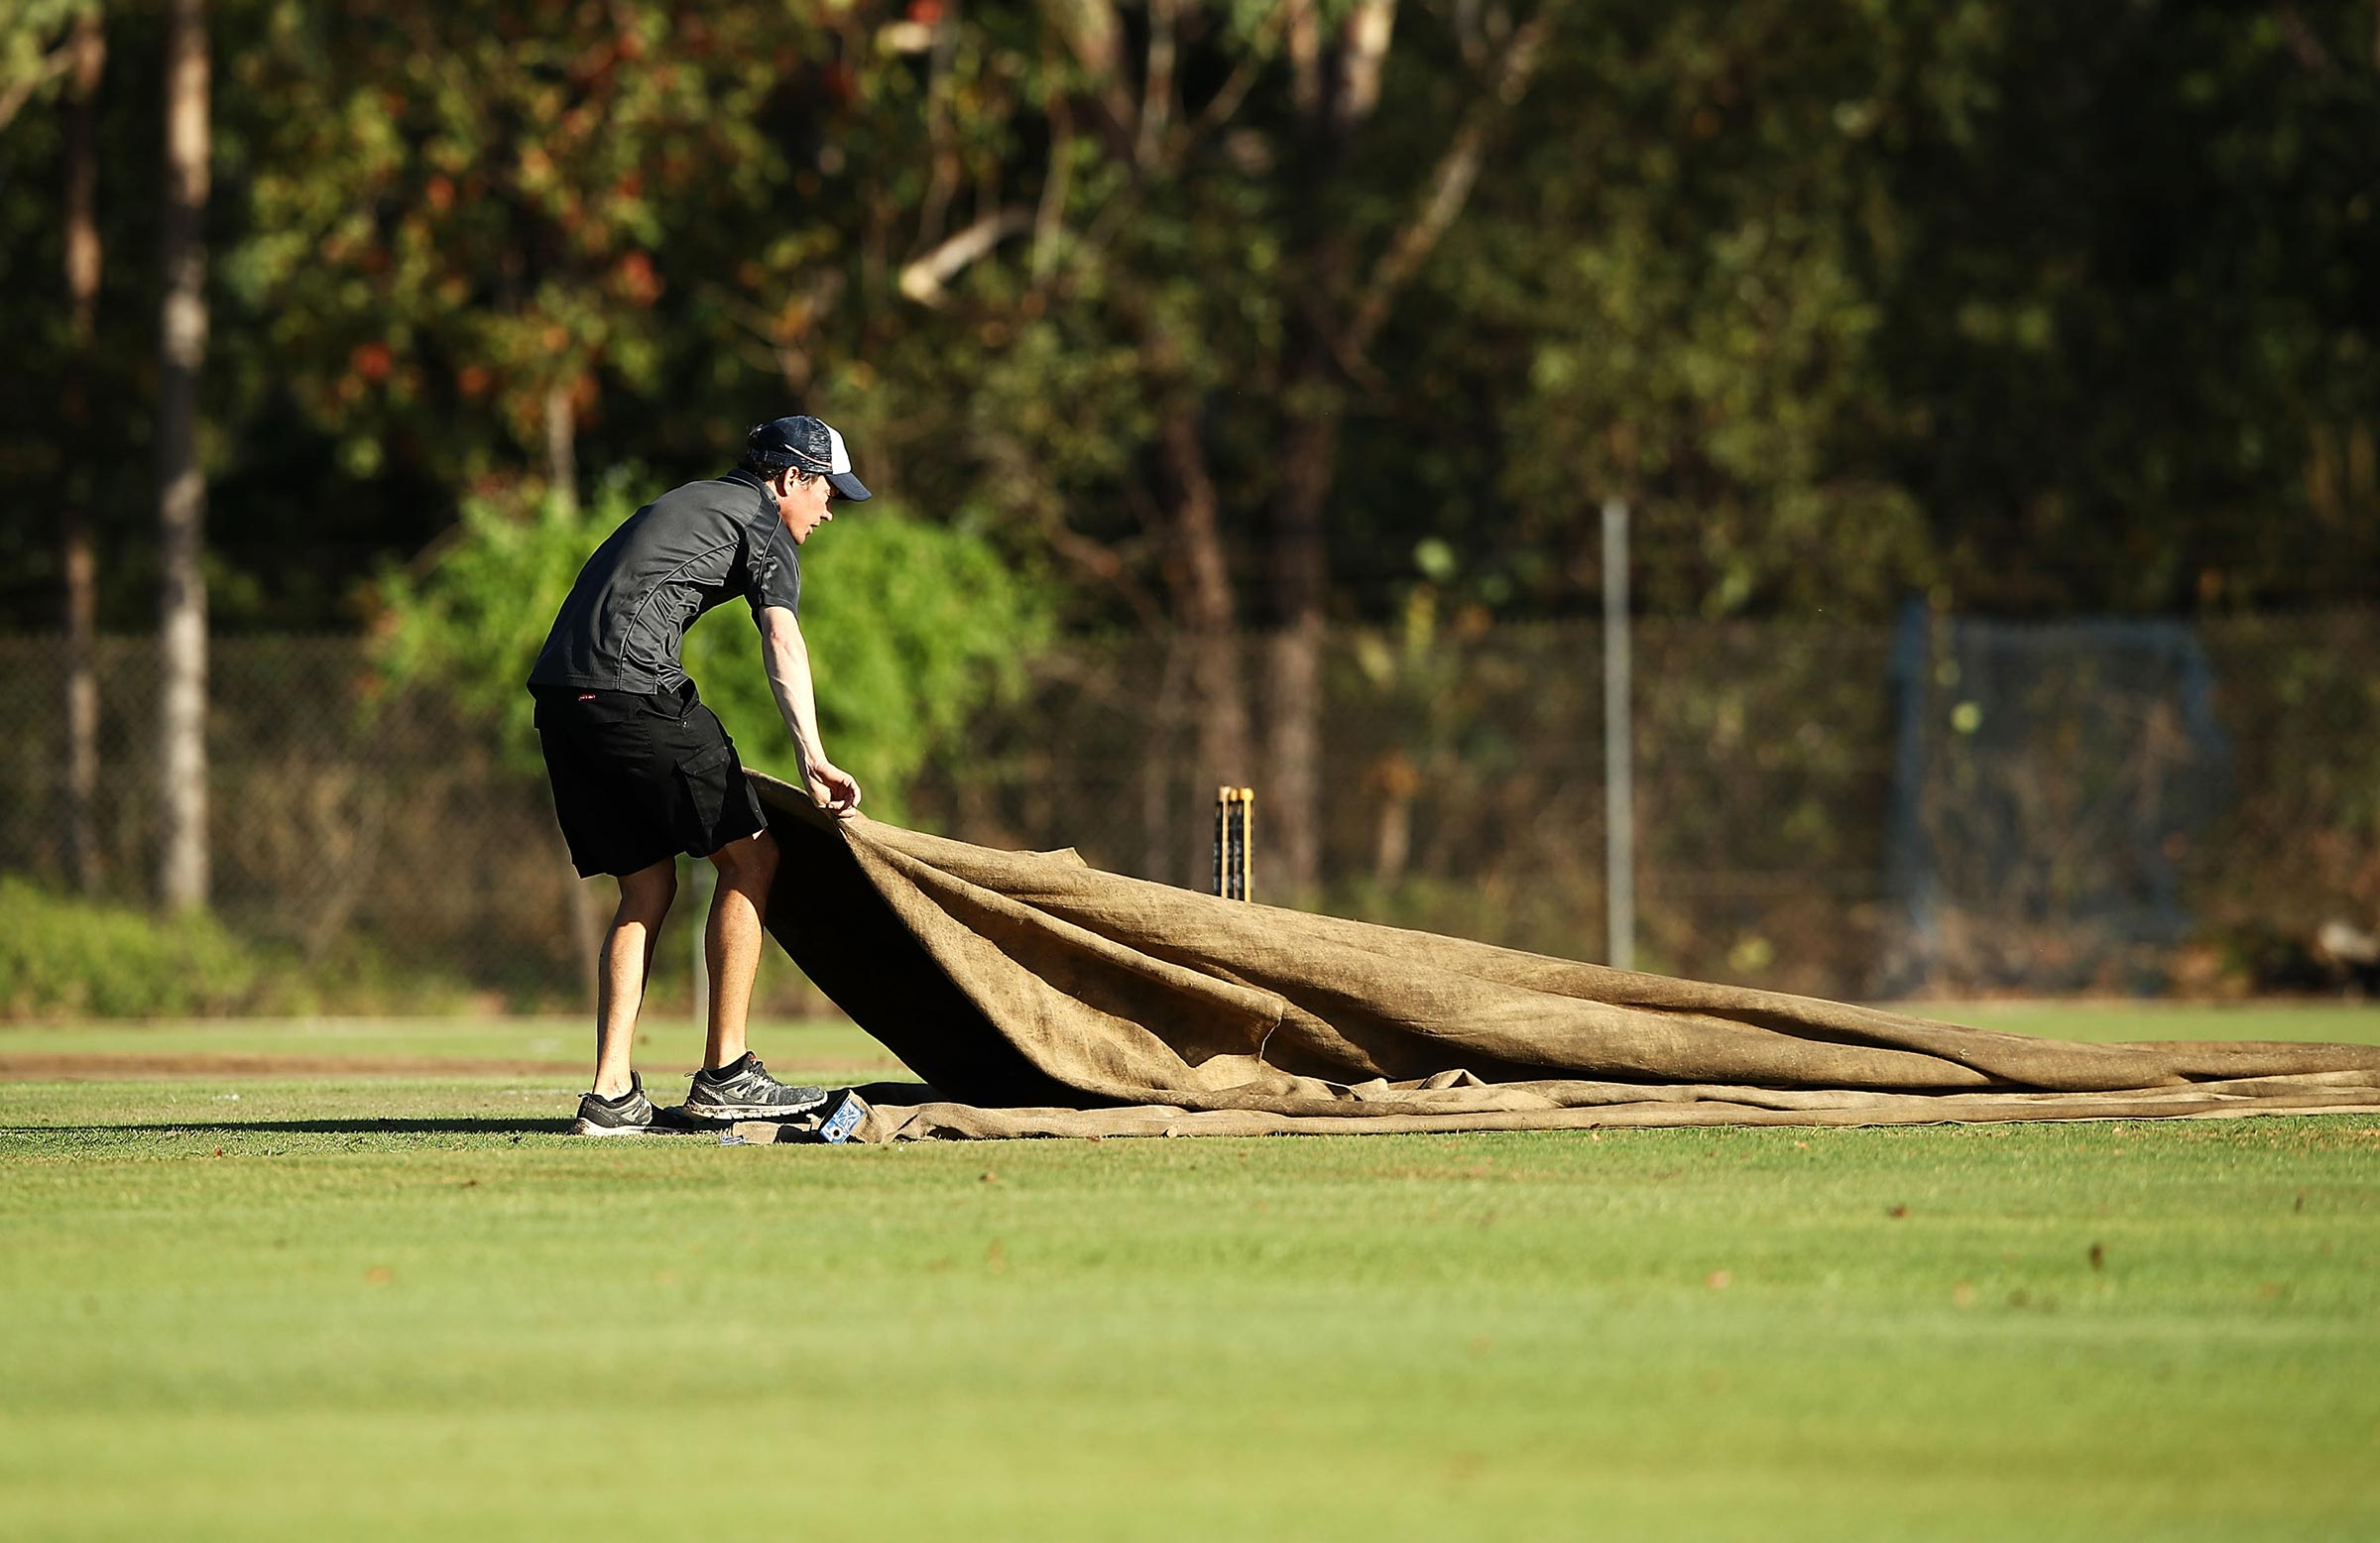 Club cricket will return this summer after a difficult 2020 // Getty